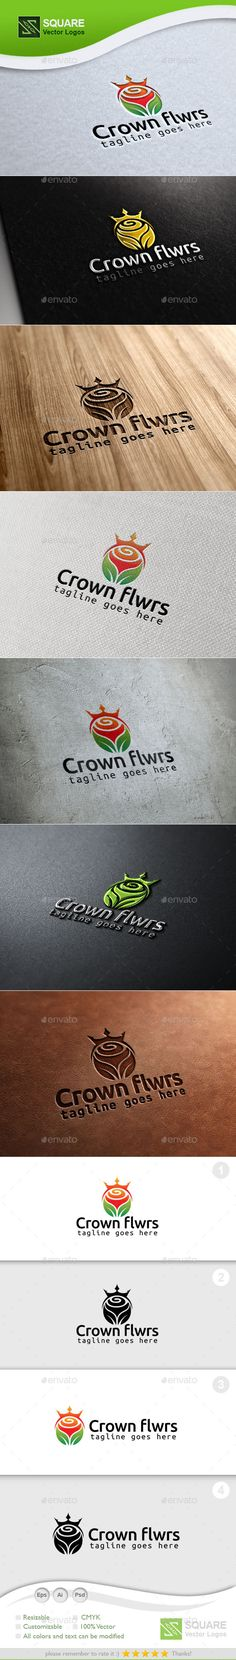 Crown Flower Custom Logo Template — Photoshop PSD #rose #petals • Available here → https://graphicriver.net/item/crown-flower-custom-logo-template/9930468?ref=pxcr